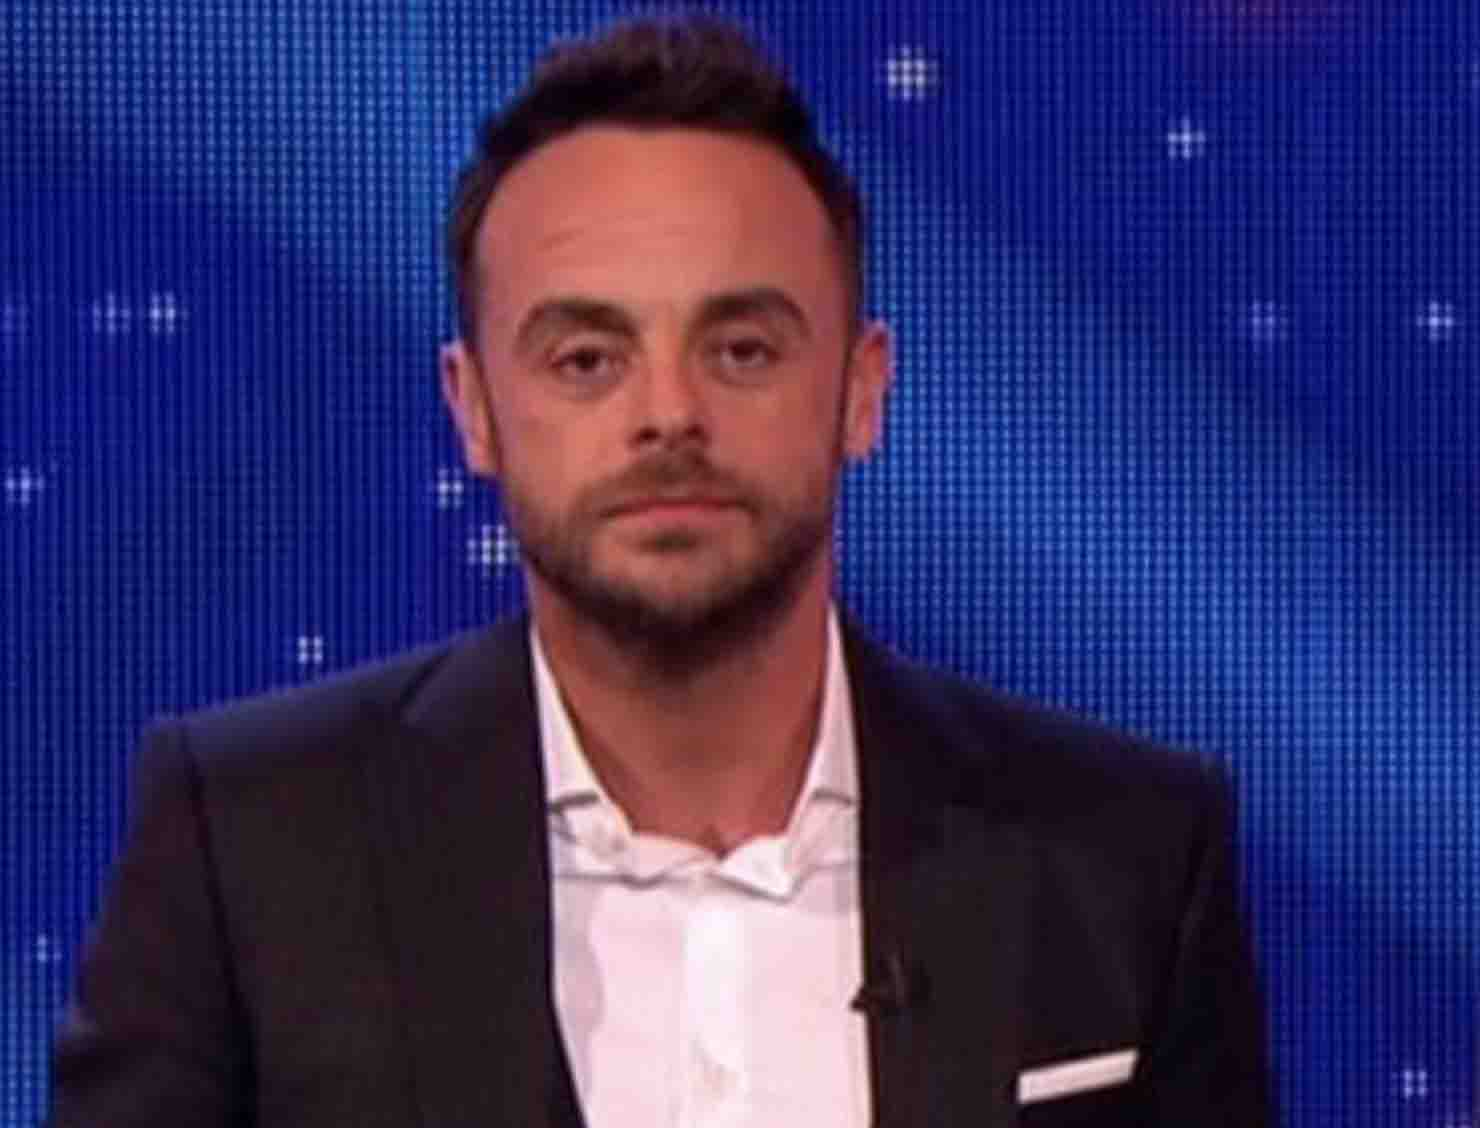 Ant McPartlin 'arrested on suspicion of drink-driving' after crash